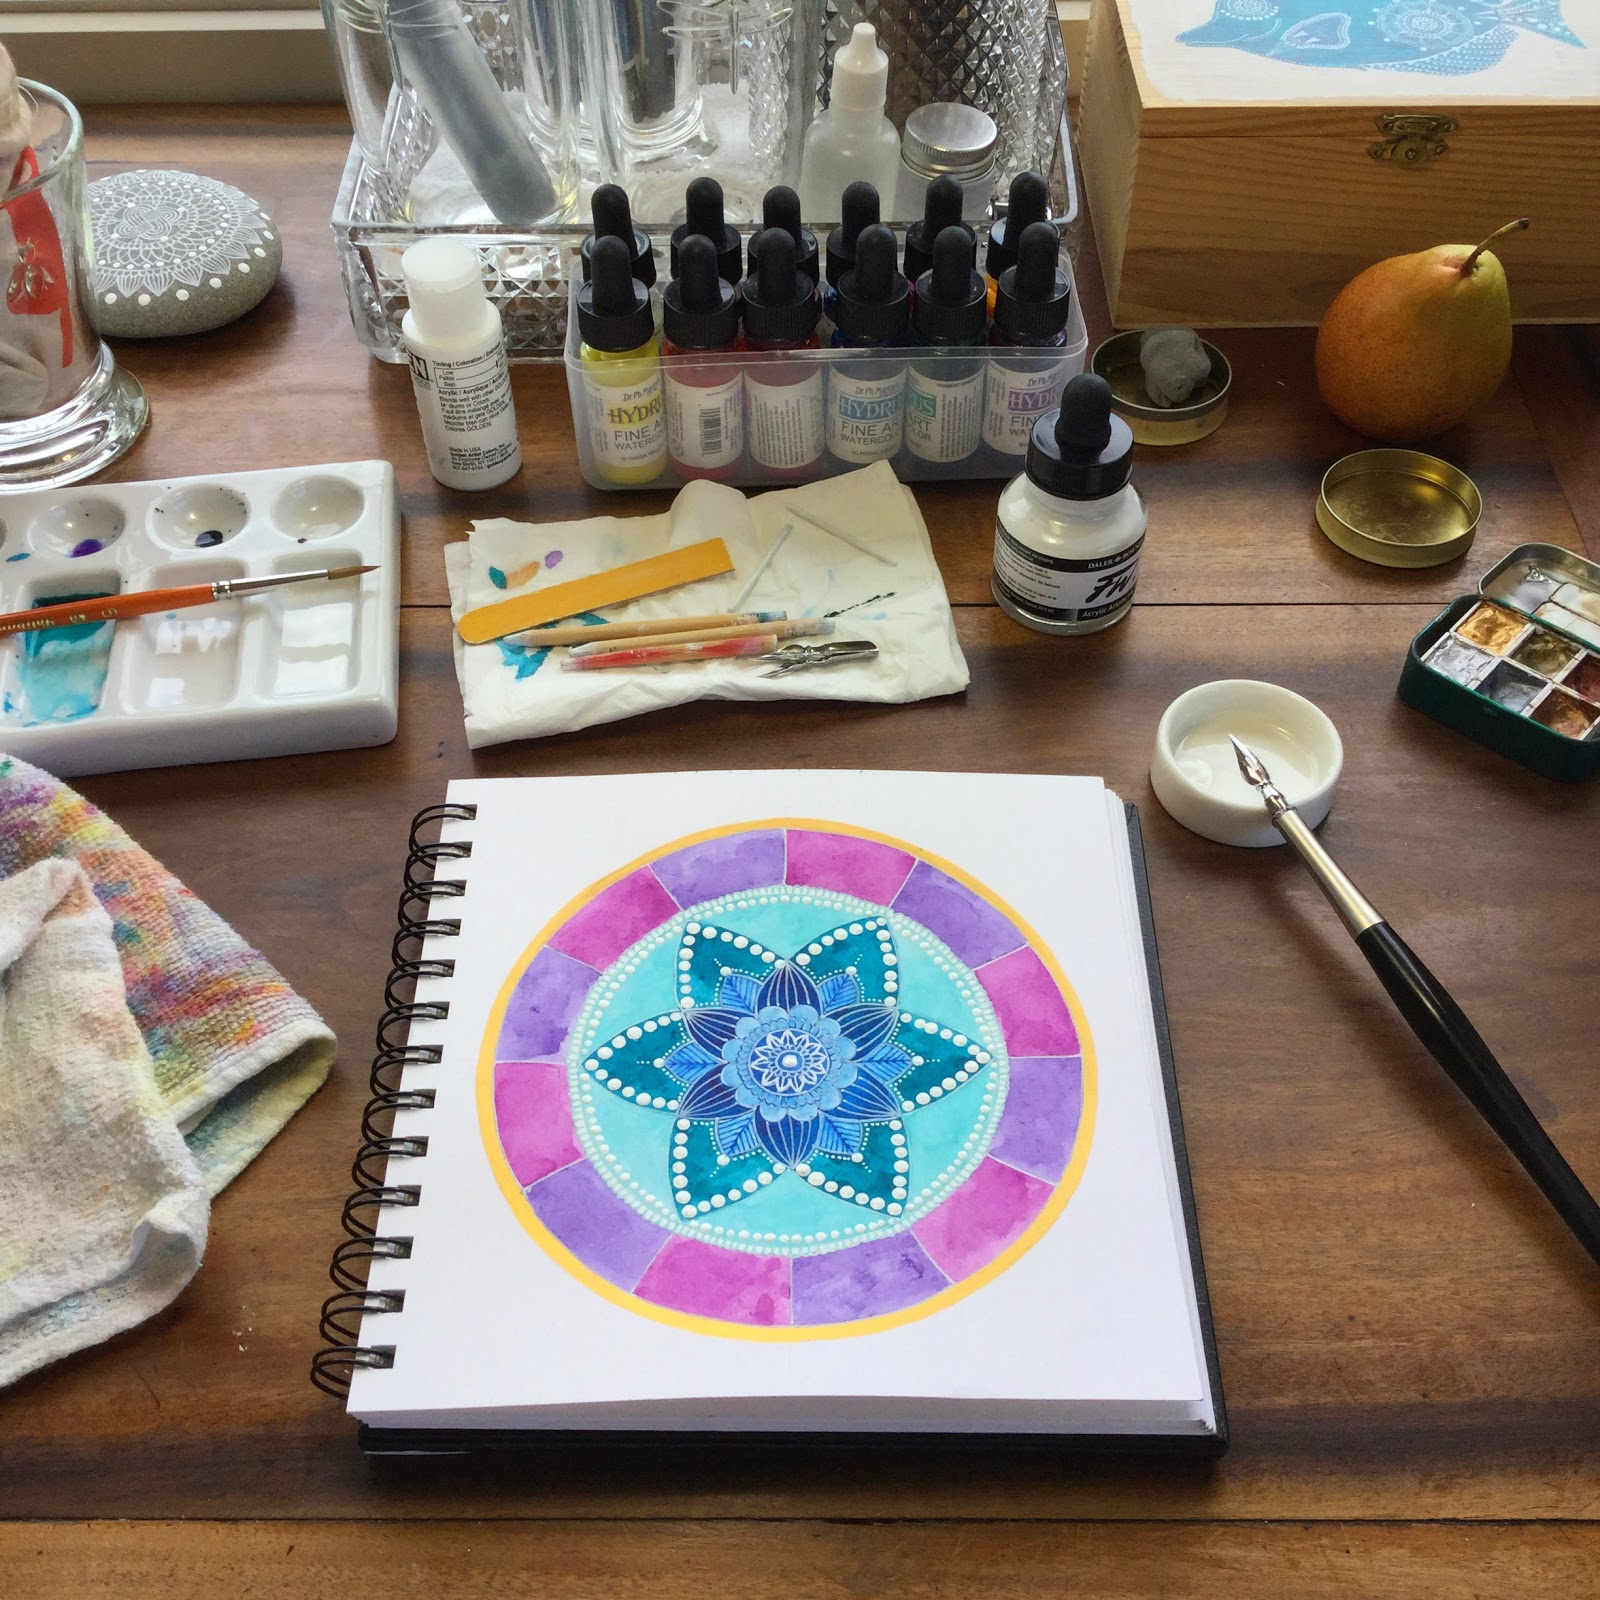 http://www.magamerlina.com/2014/11/long-time-no-see-new-mandala-tutorial.html